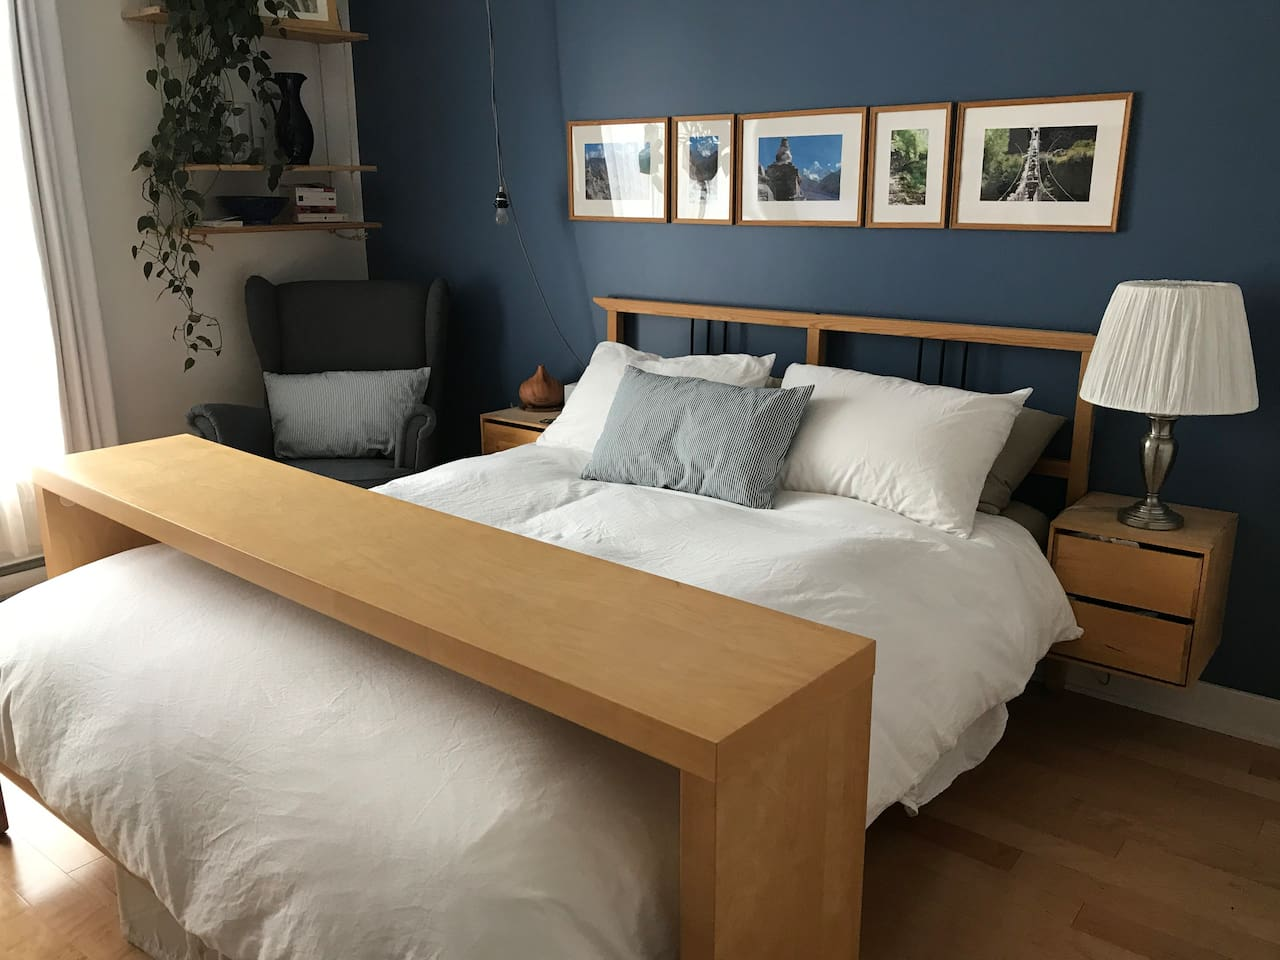 Perfect, very cozy room with queen bed, Smart TV and desk in room. High speed internet. Bed, sheets duvet, pillows, everything is cleaned before your arrival.